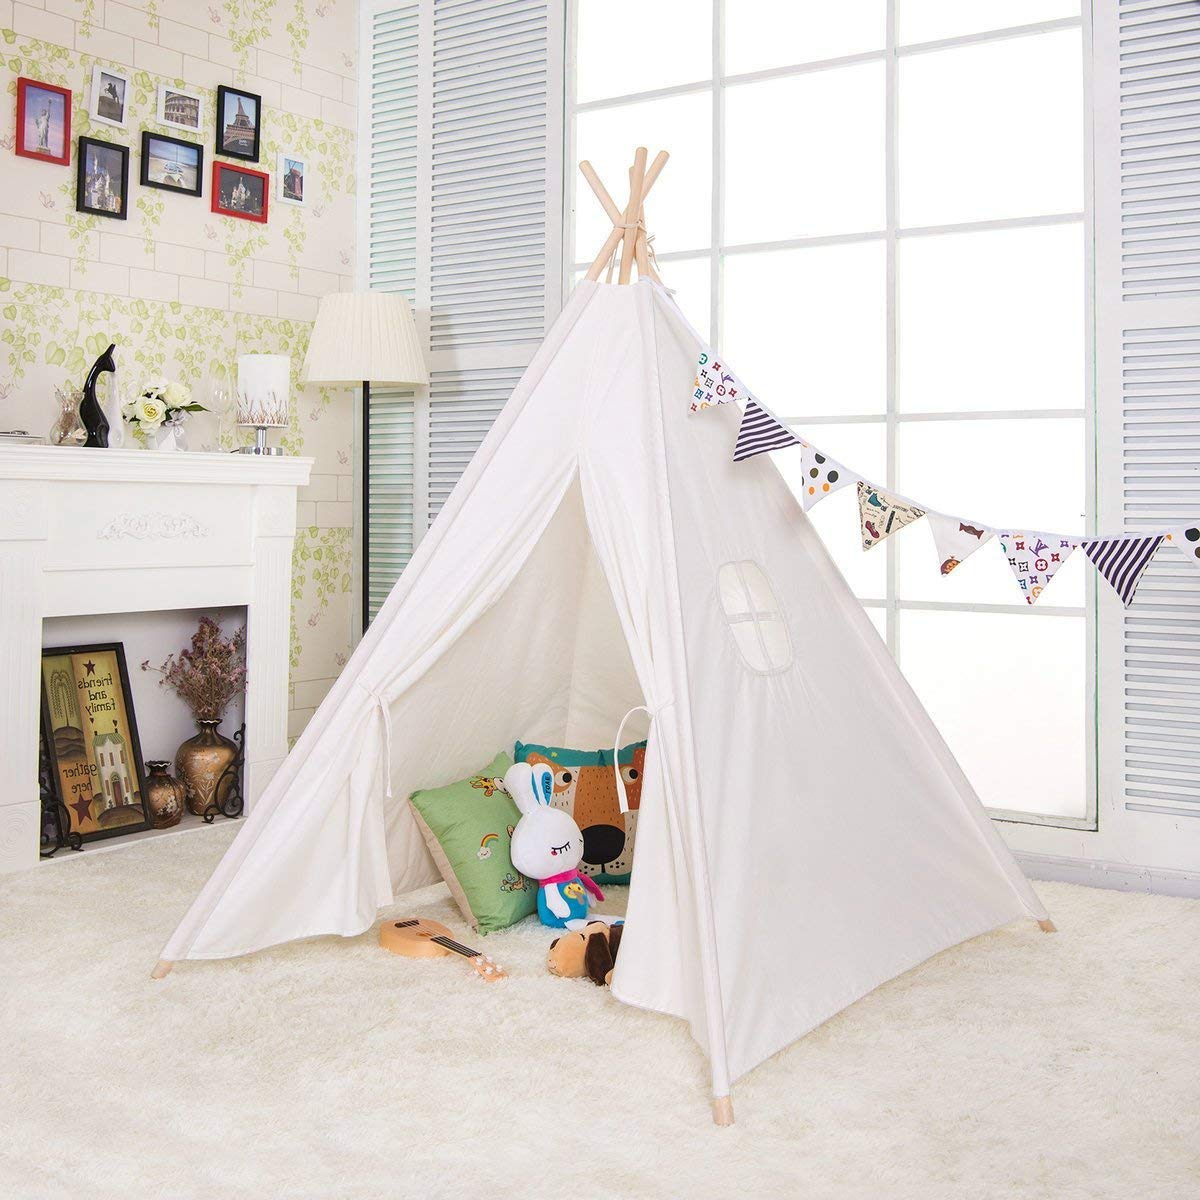 Sumbababy Teepee Tent for Kids Girls Play Tents for Girl or Boy Foldable Children Playhouse Toys for Baby Indoor and Outdoor Playing,100/% Natural Cotton Canvas Child Tipi with Carry Bag